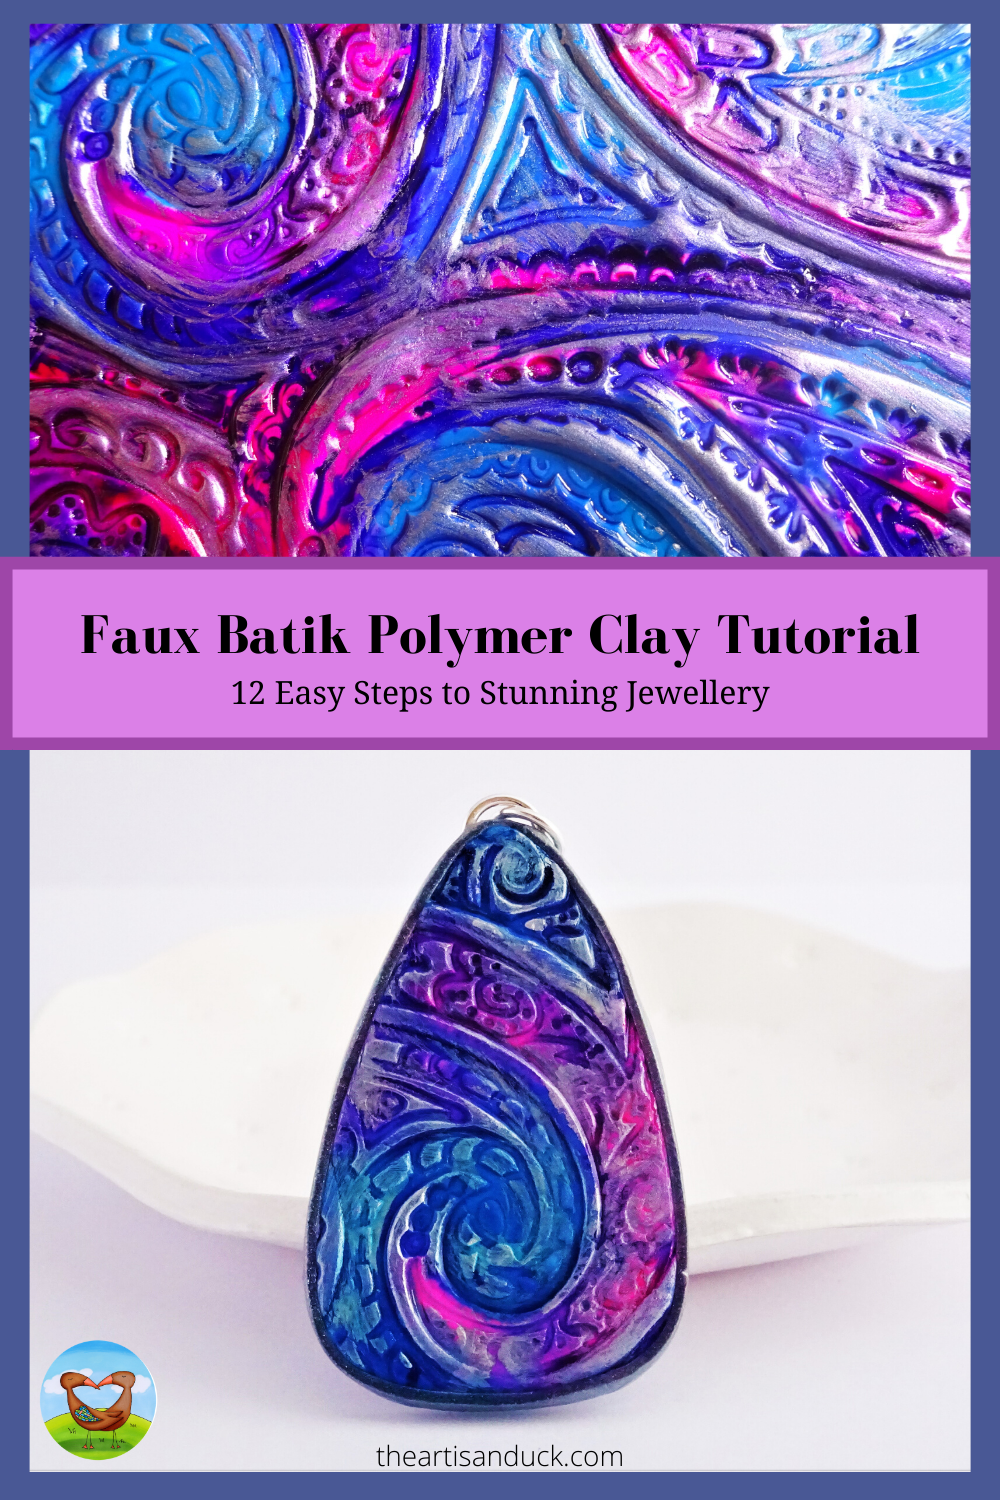 Faux Batik Polymer Clay Tutorial with Alcohol Inks